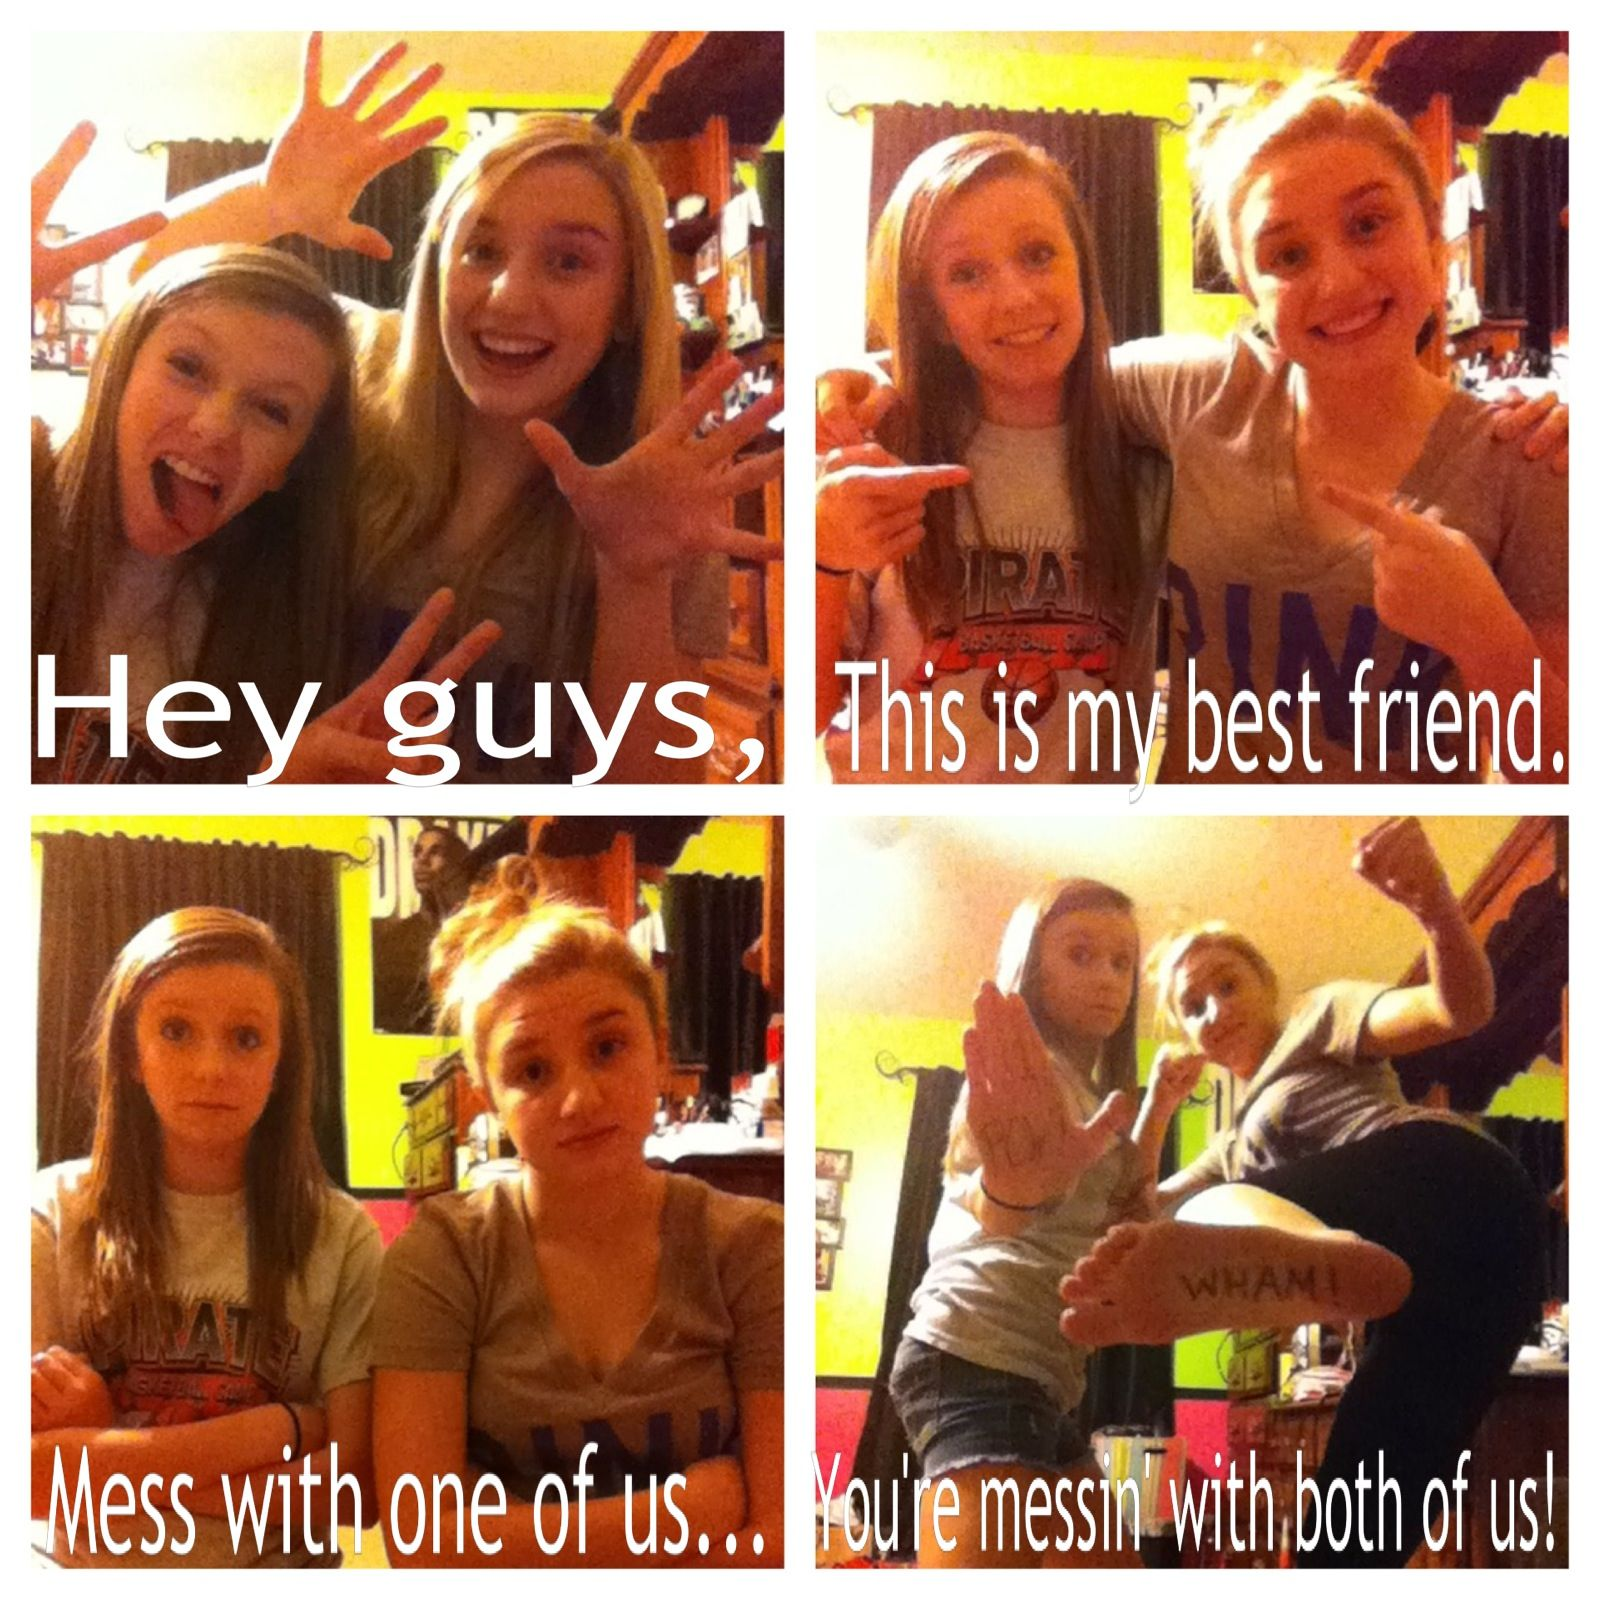 Best Friends Teenagers Fun Bored Cute Funny Quote